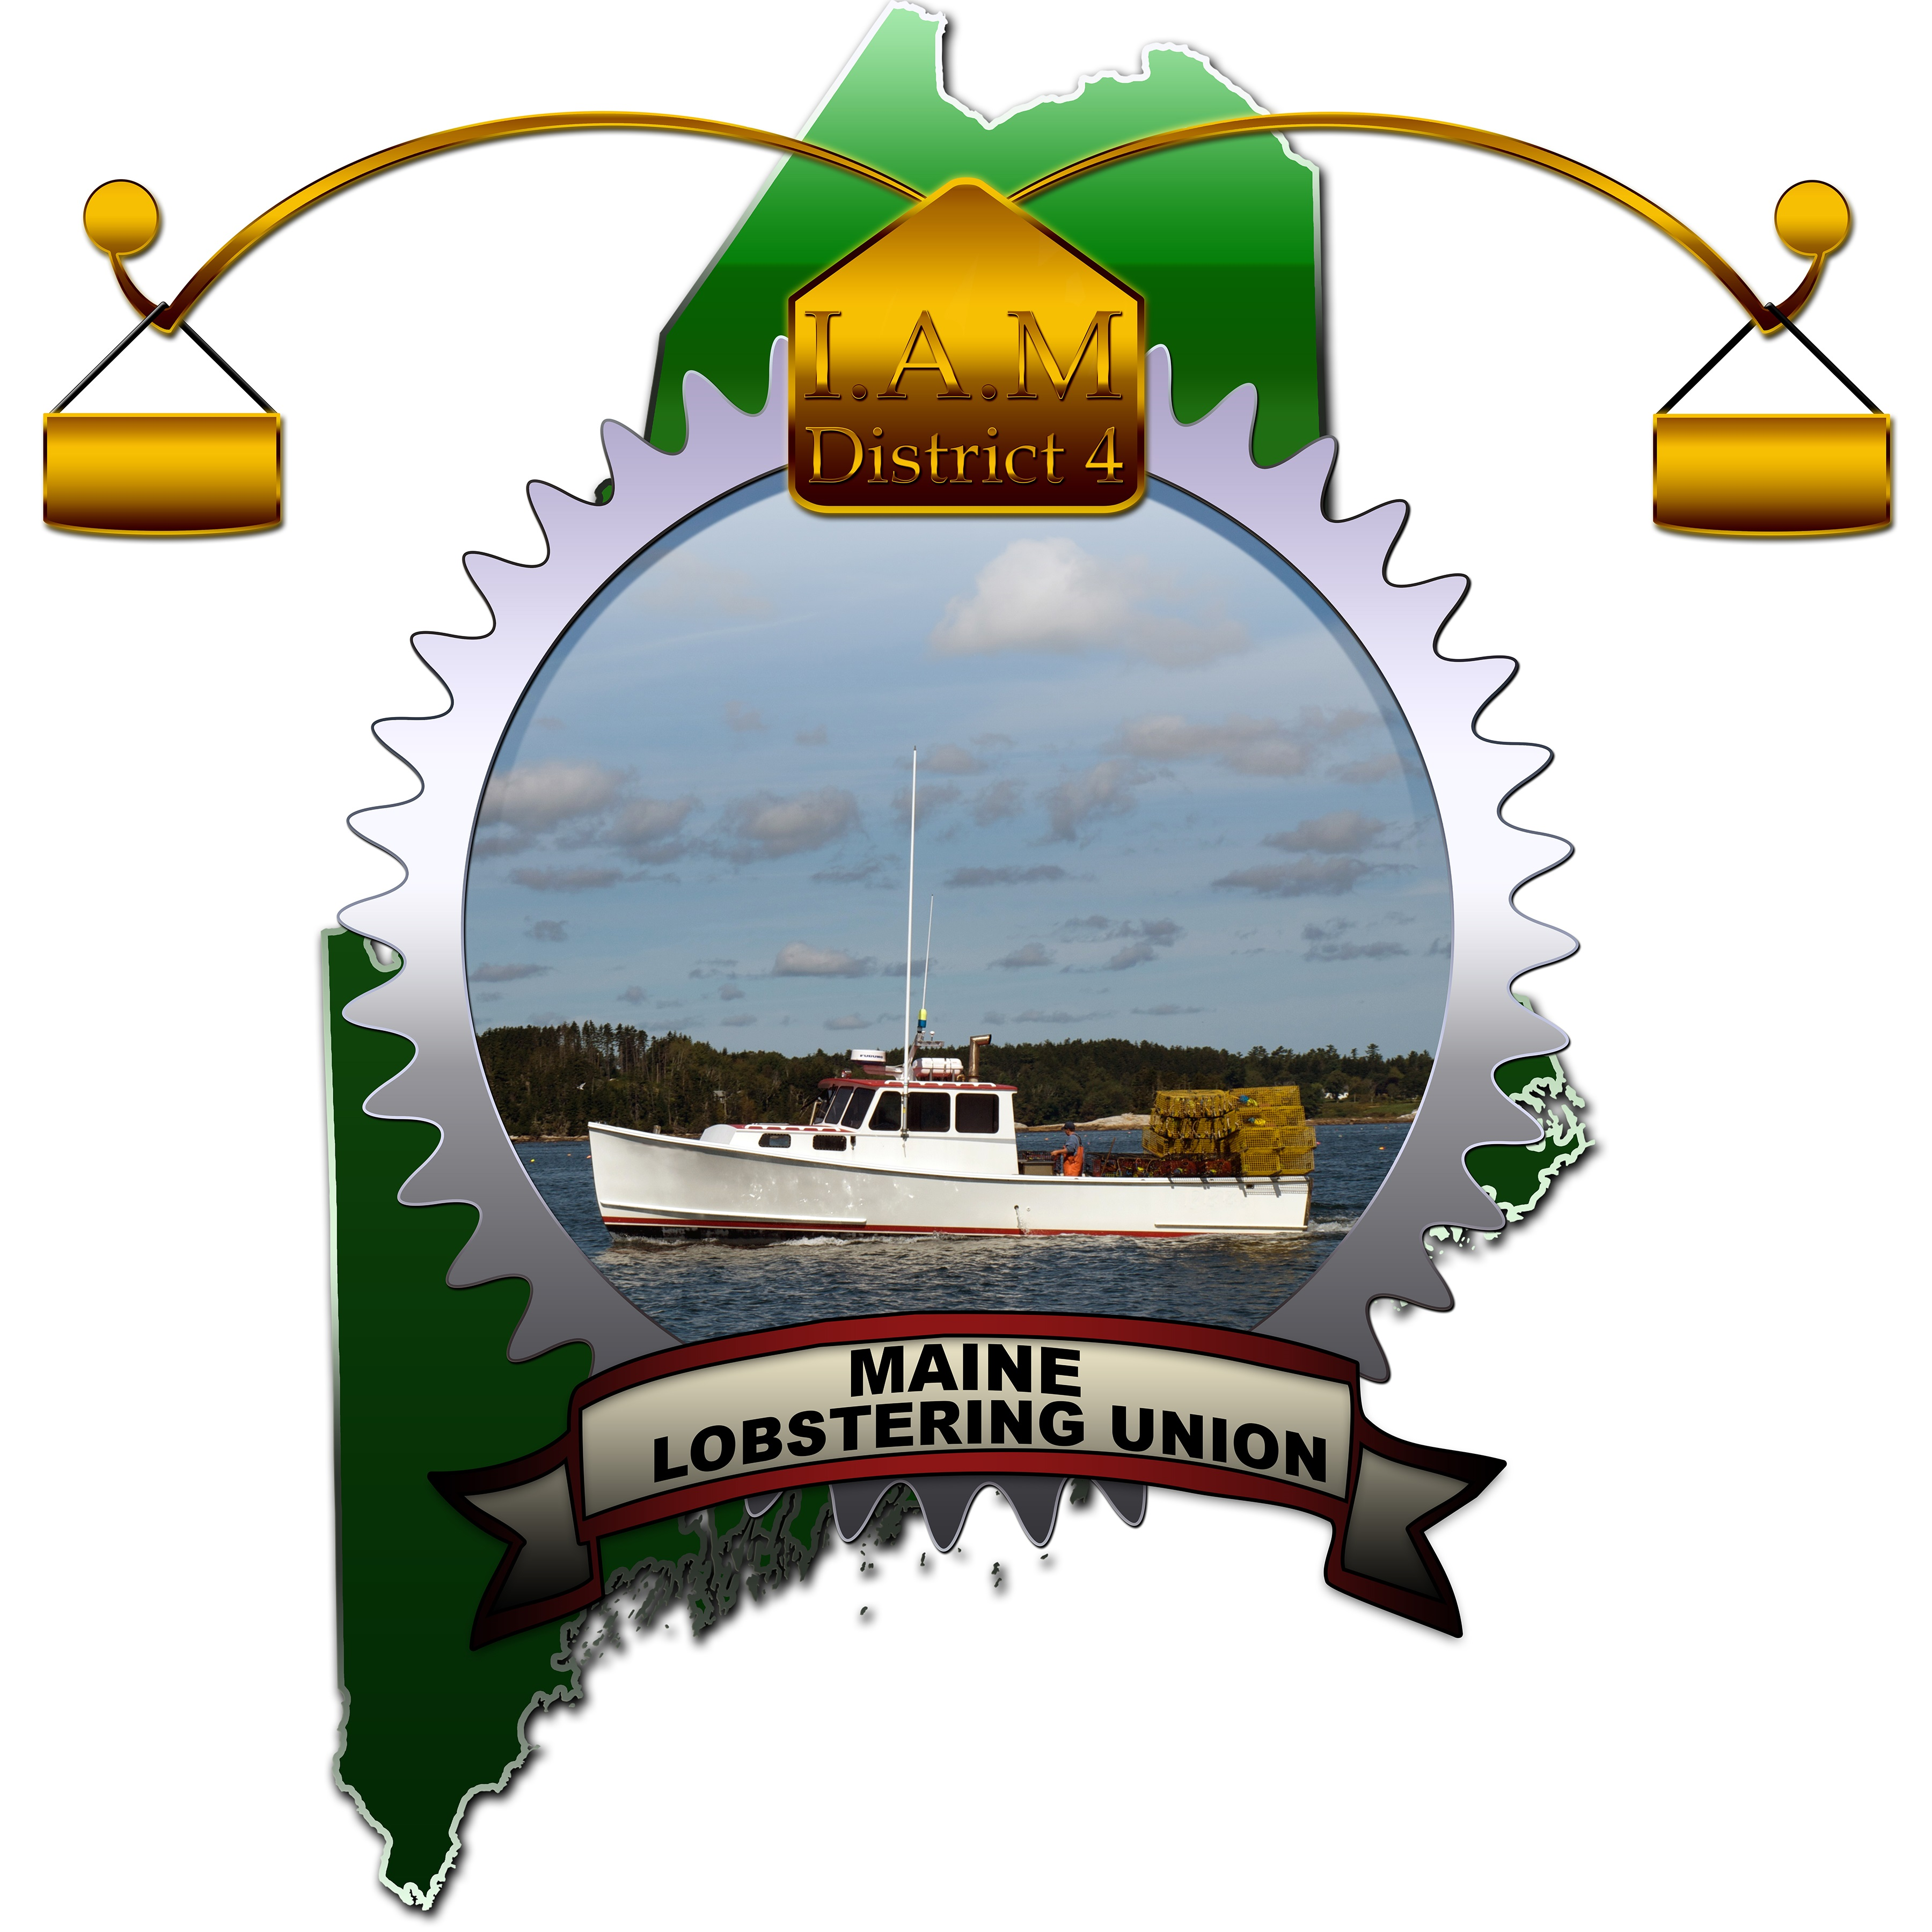 Maine Lobstering Union Files Federal Lawsuit for Emergency Injunctive Relief Against National Marine Fisheries Service et. al.